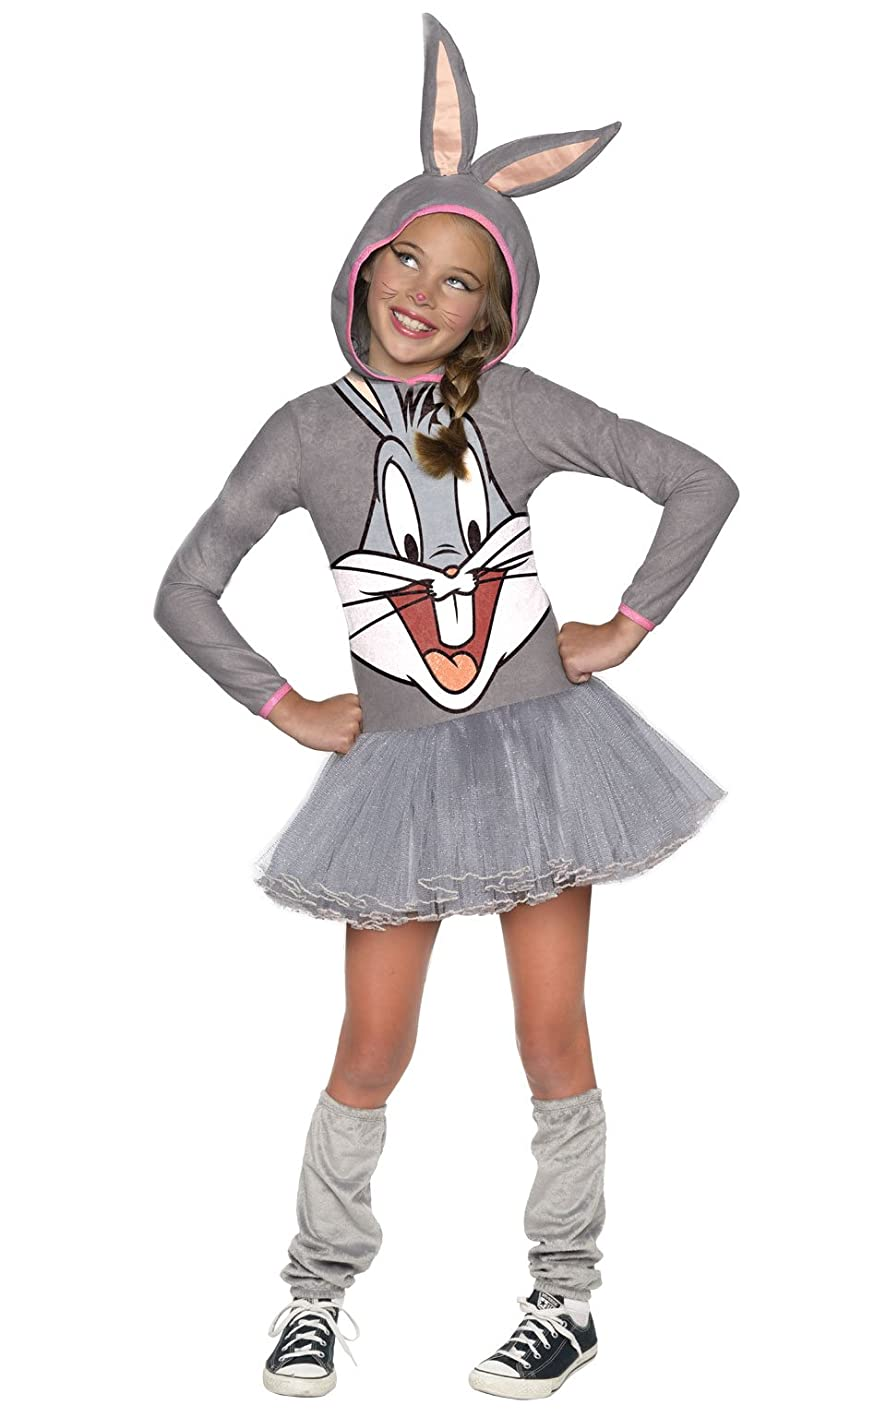 Looney Tunes Bugs Bunny Girls Hooded Costume, Child's Large wvwuscilbvj187